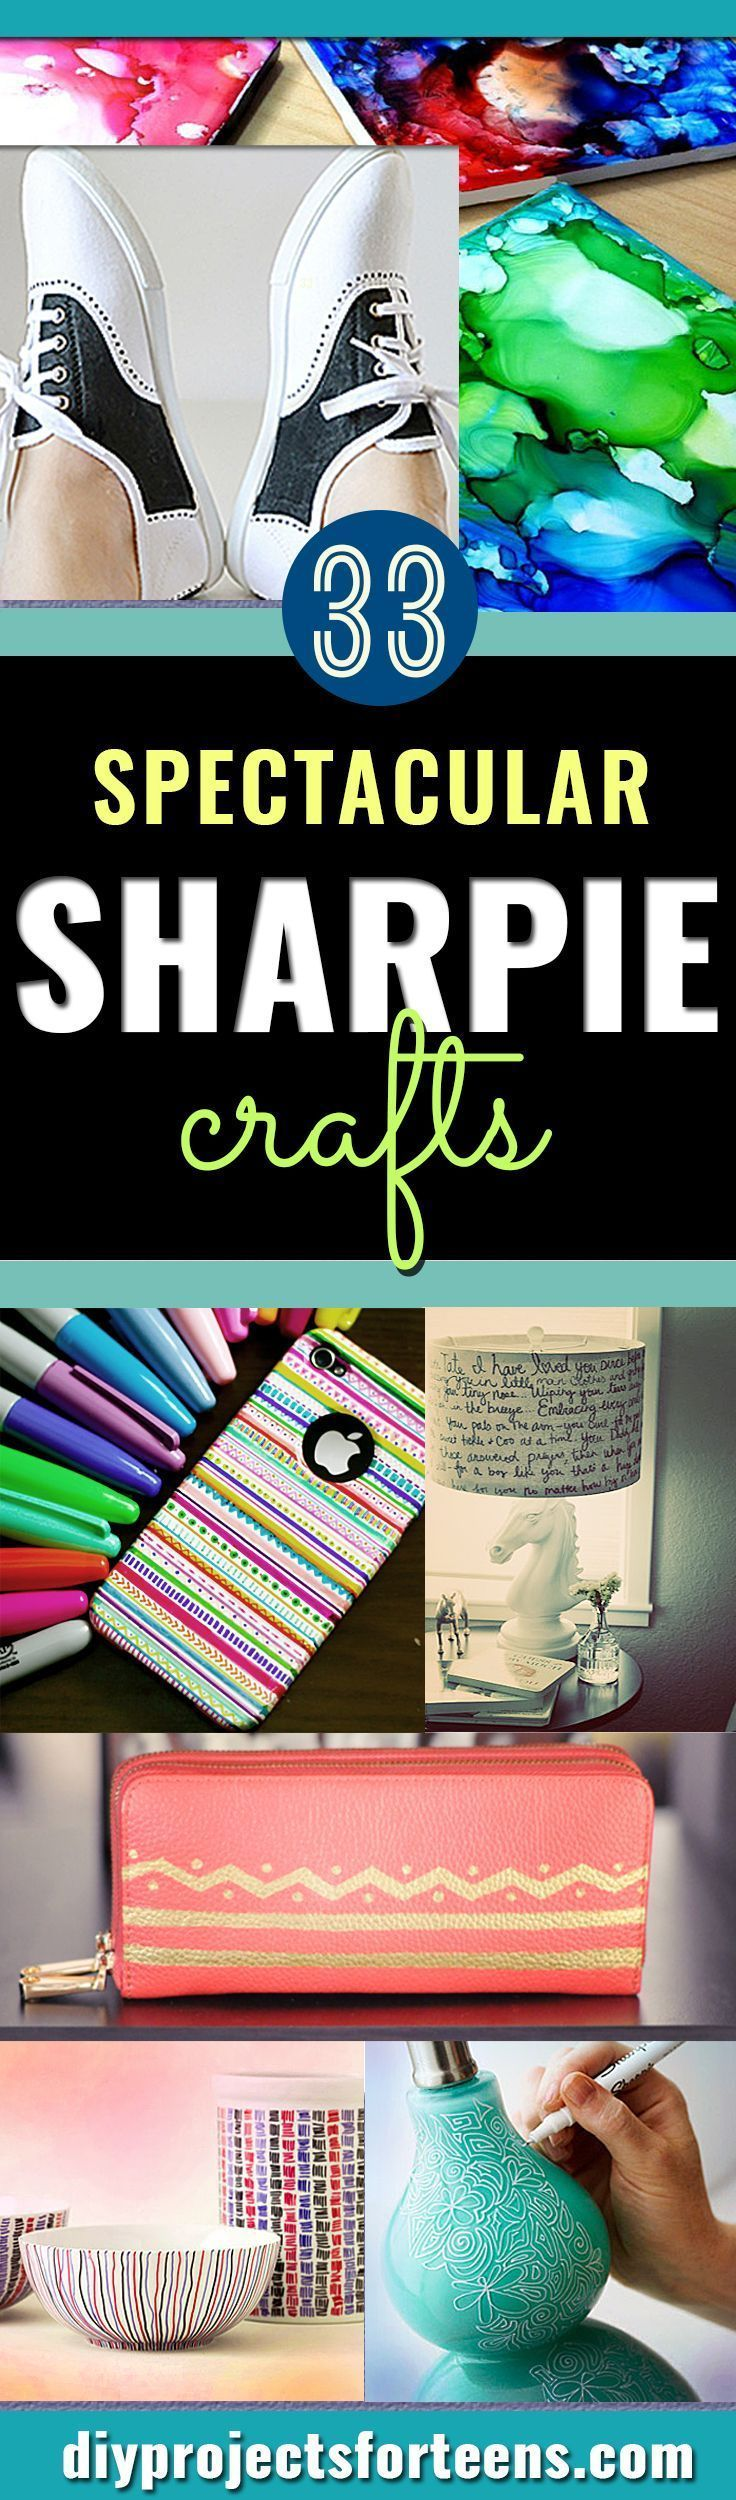 33 Cool Sharpie Crafts and DIY Project Ideas